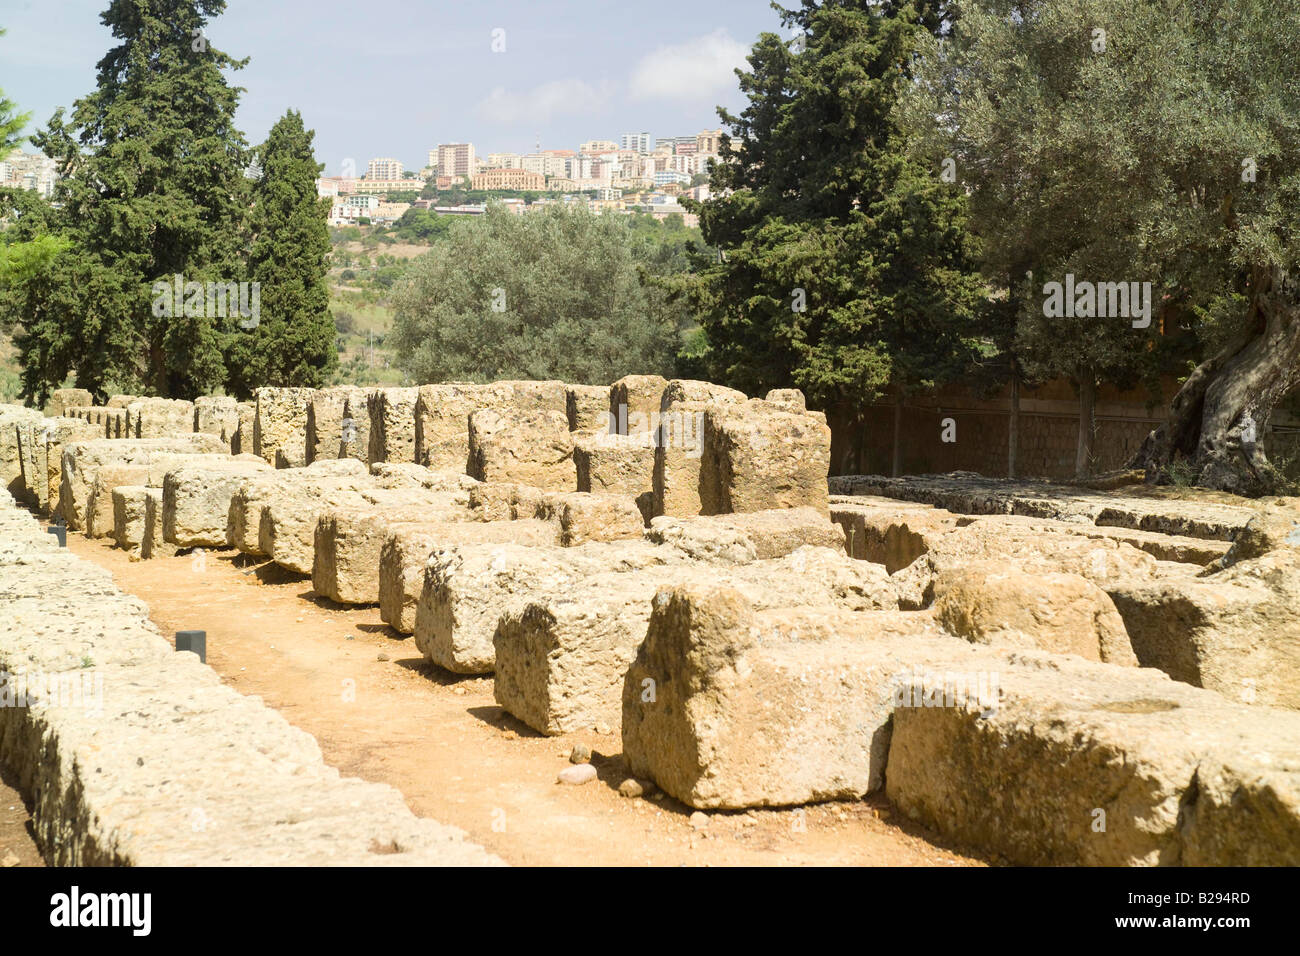 Agrigento Sicily Date 28 05 2008 Ref ZB693 114318 0123 COMPULSORY CREDIT World Pictures Photoshot - Stock Image